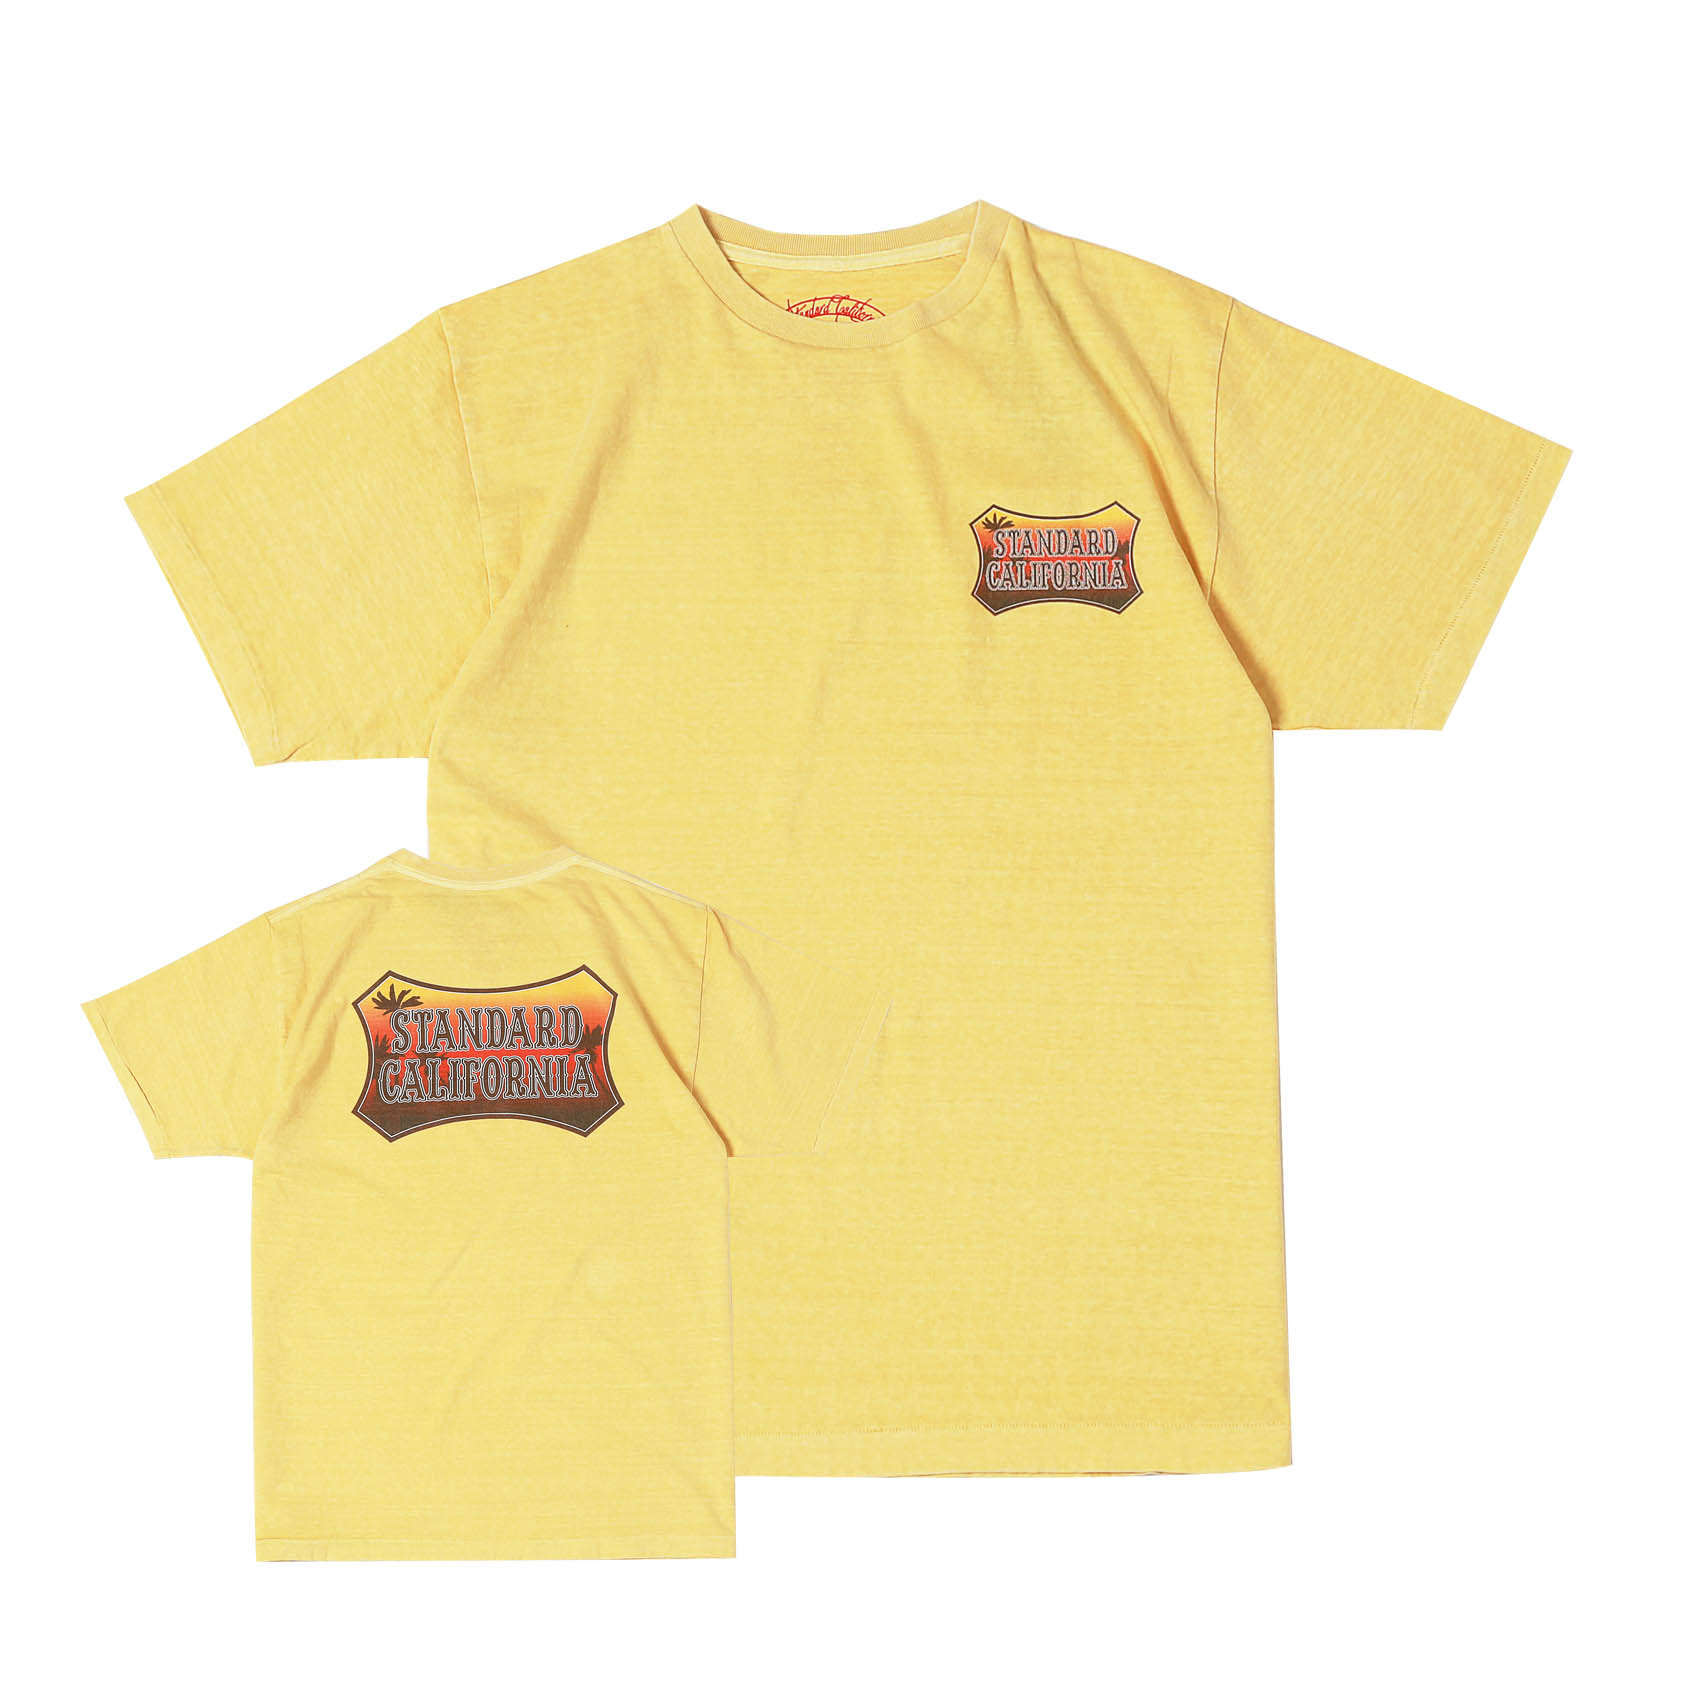 SUNSET SHIELD LOGO TEE - YELLOW